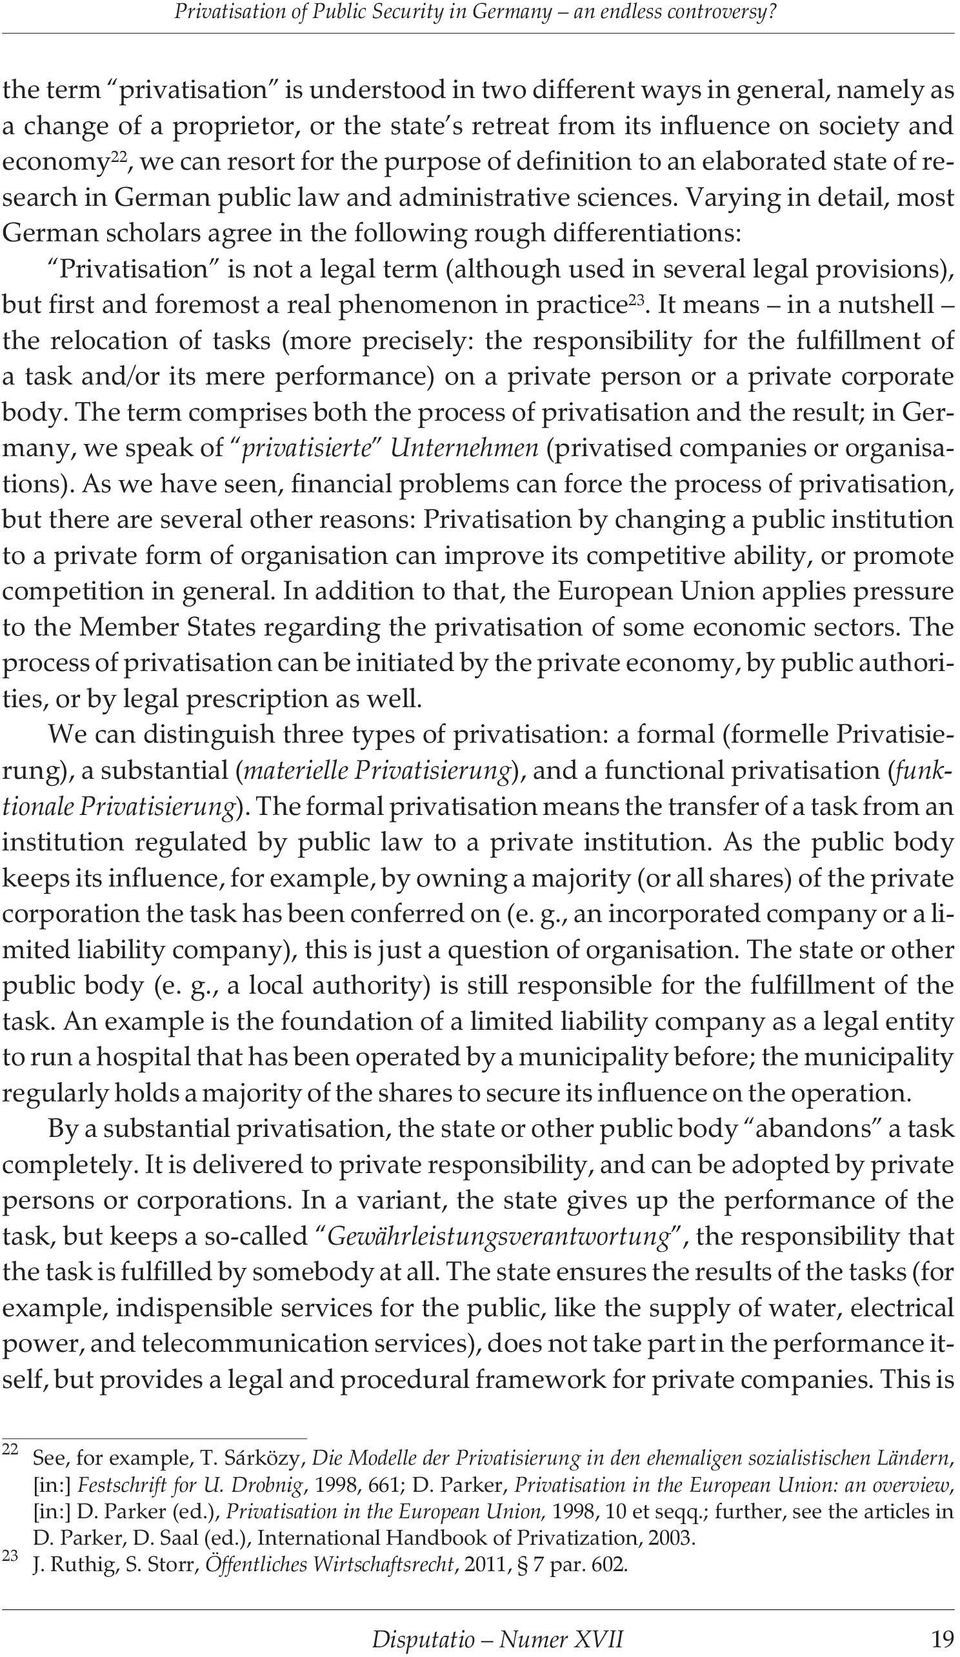 purpose of definition to an elaborated state of research in German public law and administrative sciences.